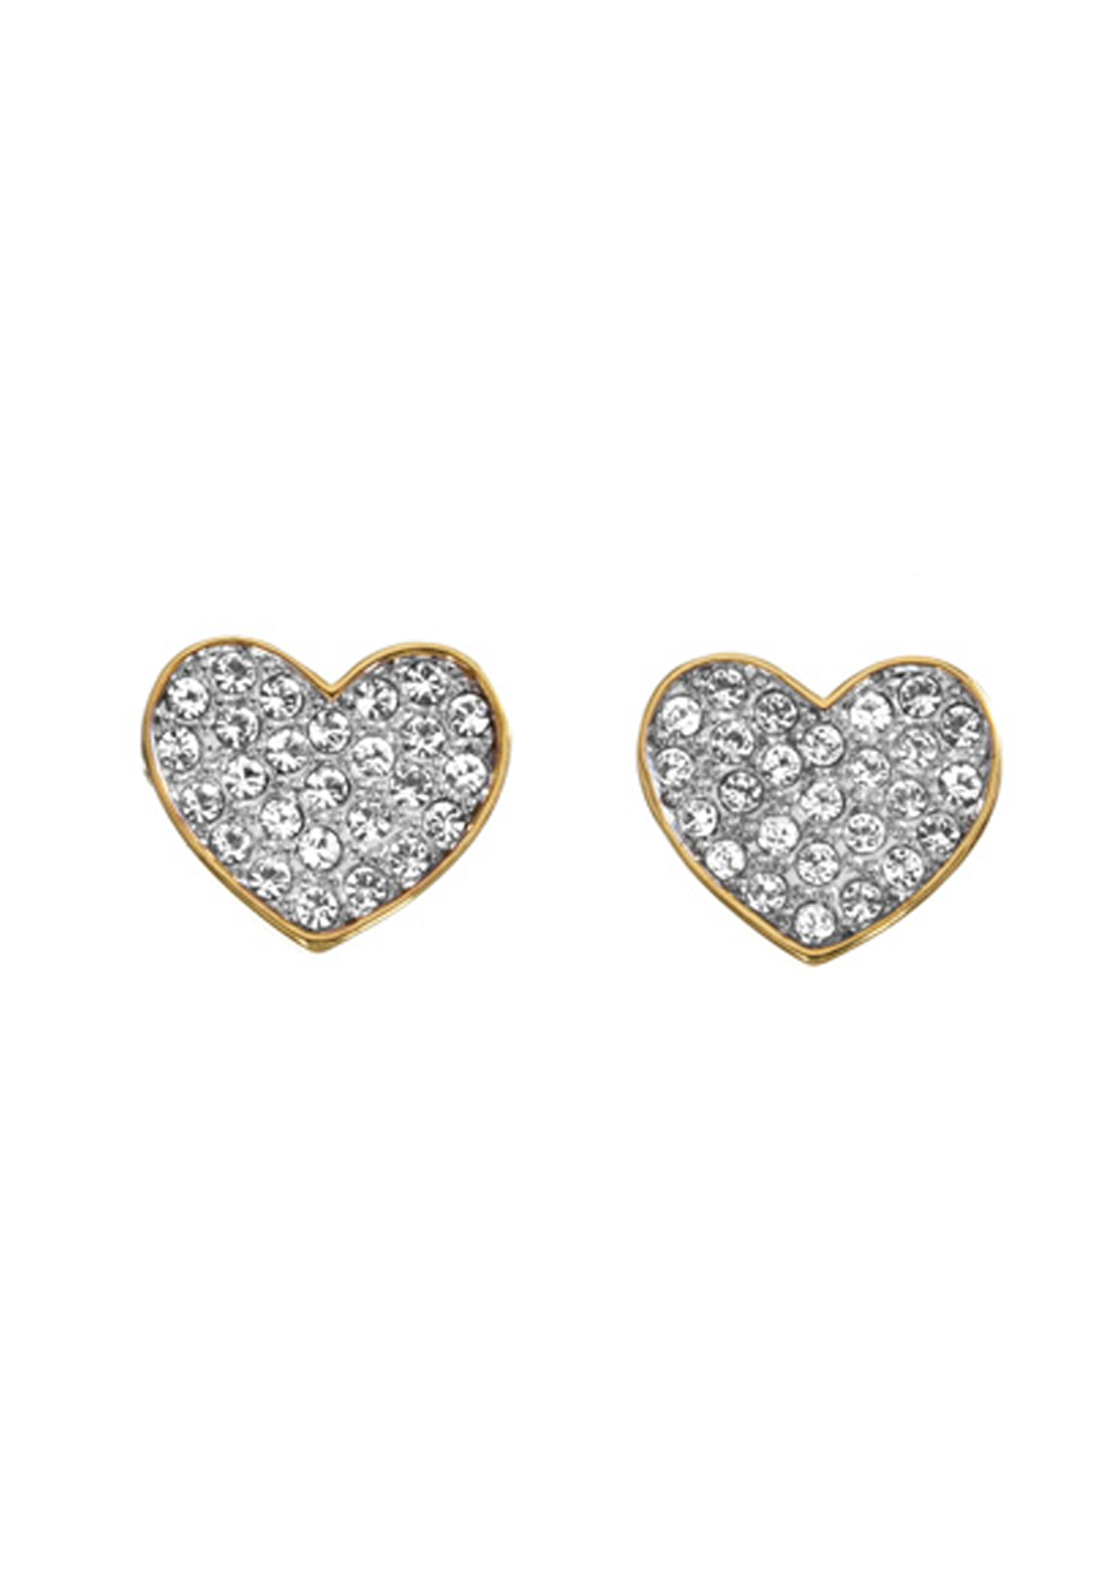 Guess Womens Pave Heart Stud Earrings, Gold